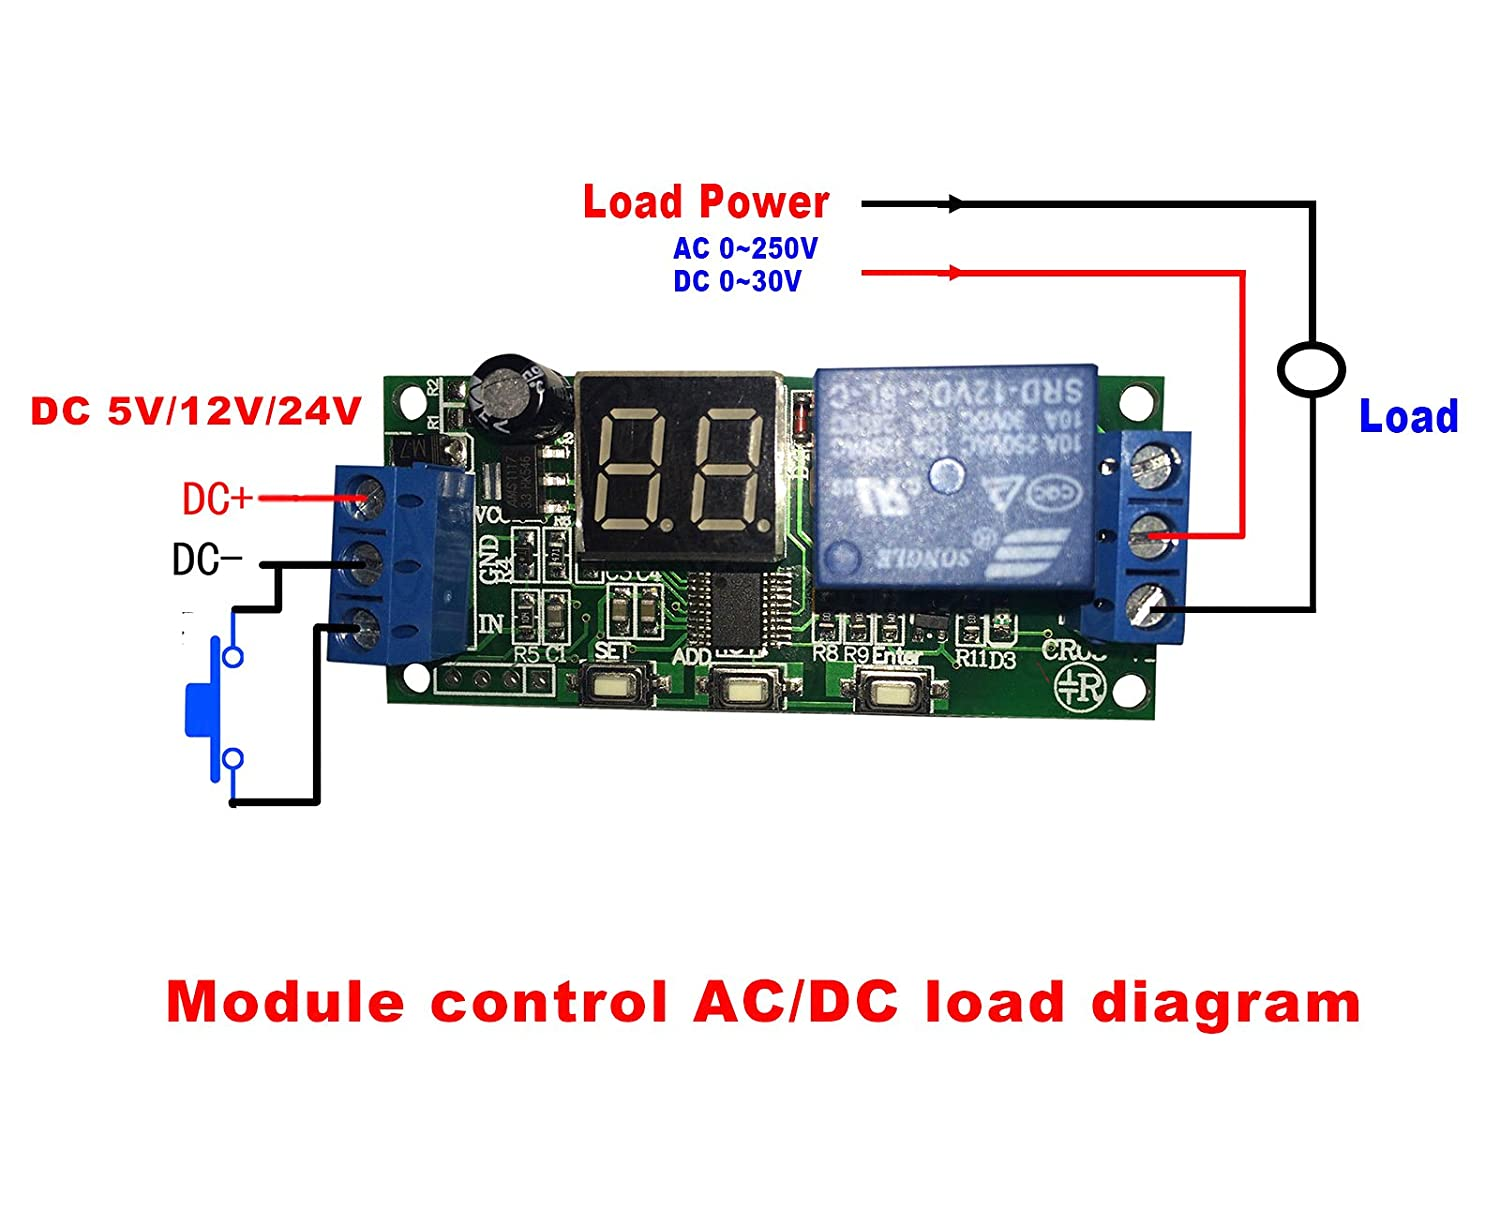 711CVqh8YnL._SL1500_ 250vdc wiring diagram show posts mikey hw schematic the wiring,Dc Wiring Diagram Led Display